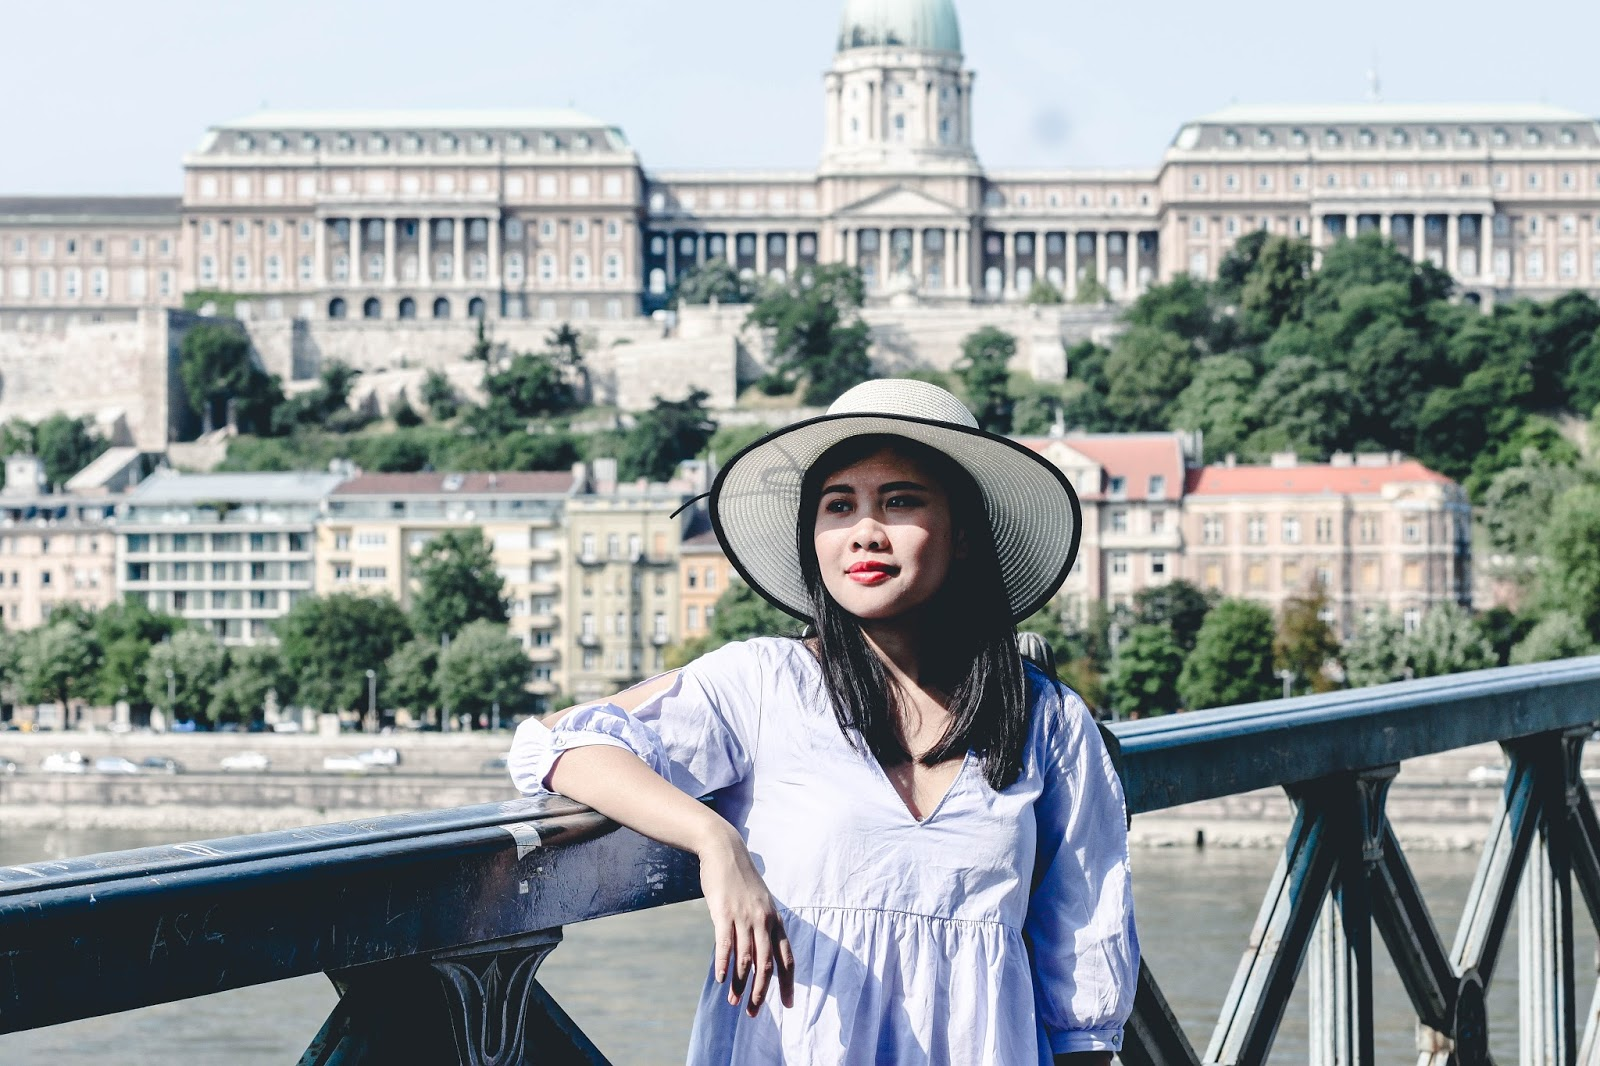 singapore blogger stylist stylexstyle lookbook wiwt ootd photography style budapest summer holiday travel dress portraits street